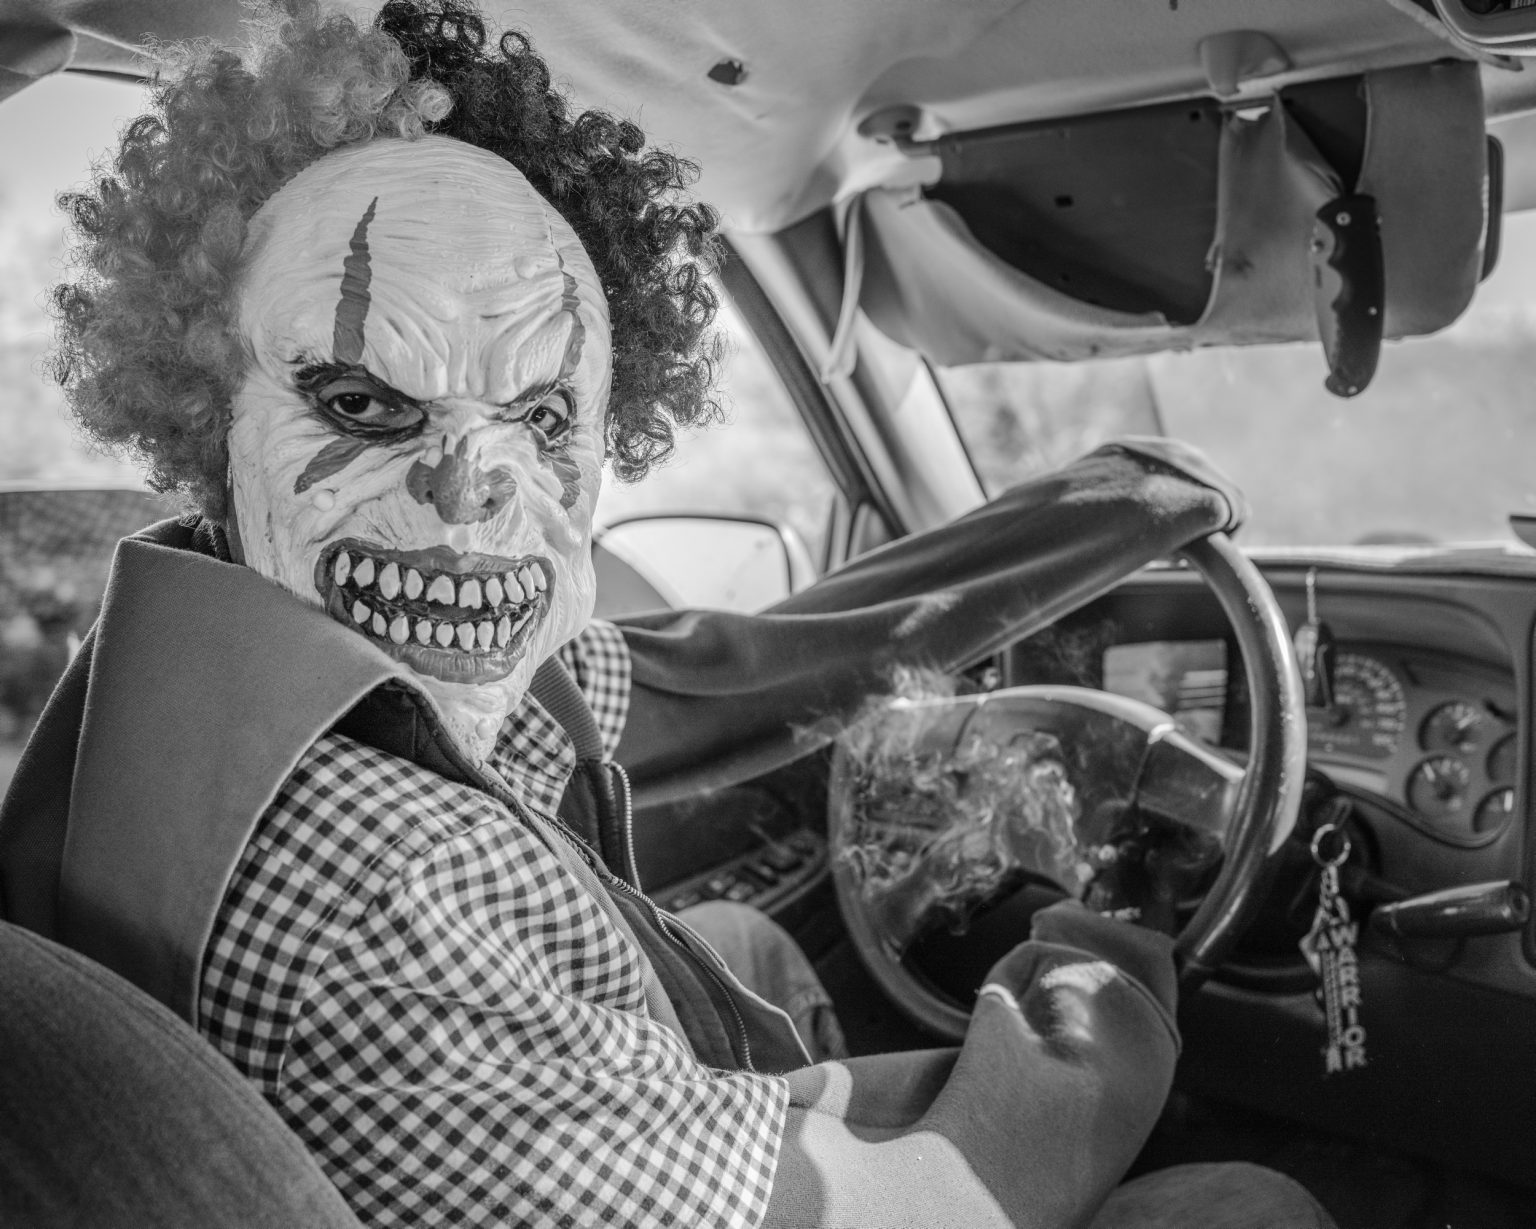 John, member of the Warrior Society Gang, while driving his car in the Tohono O'Odham Native reservation. The warrior society is a Native American gang that protects the interests of the struggling native communities around the United States.  The Tohono O'Odham reservation is located in the Sonoran desert, along the border with Mexico  and has been accused of cooperating in human and drug smuggling. with the Mexican cartels. The growing tension between federal authorities and the Native community brought to the creation of two permanent checkpoints to access and exit the natives lands.